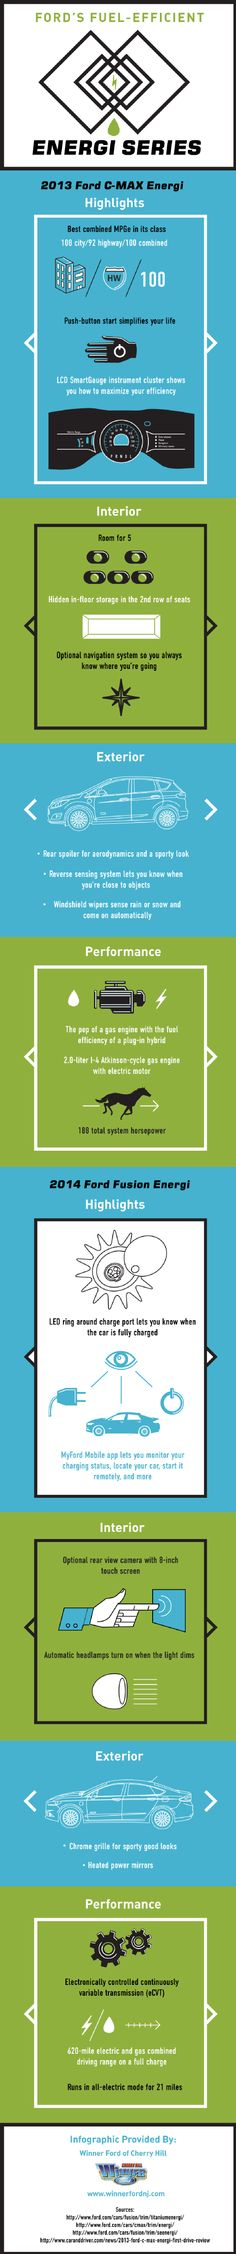 Ford's Fuel Efficient [INFOGRAPHIC] #Ford#Fuel